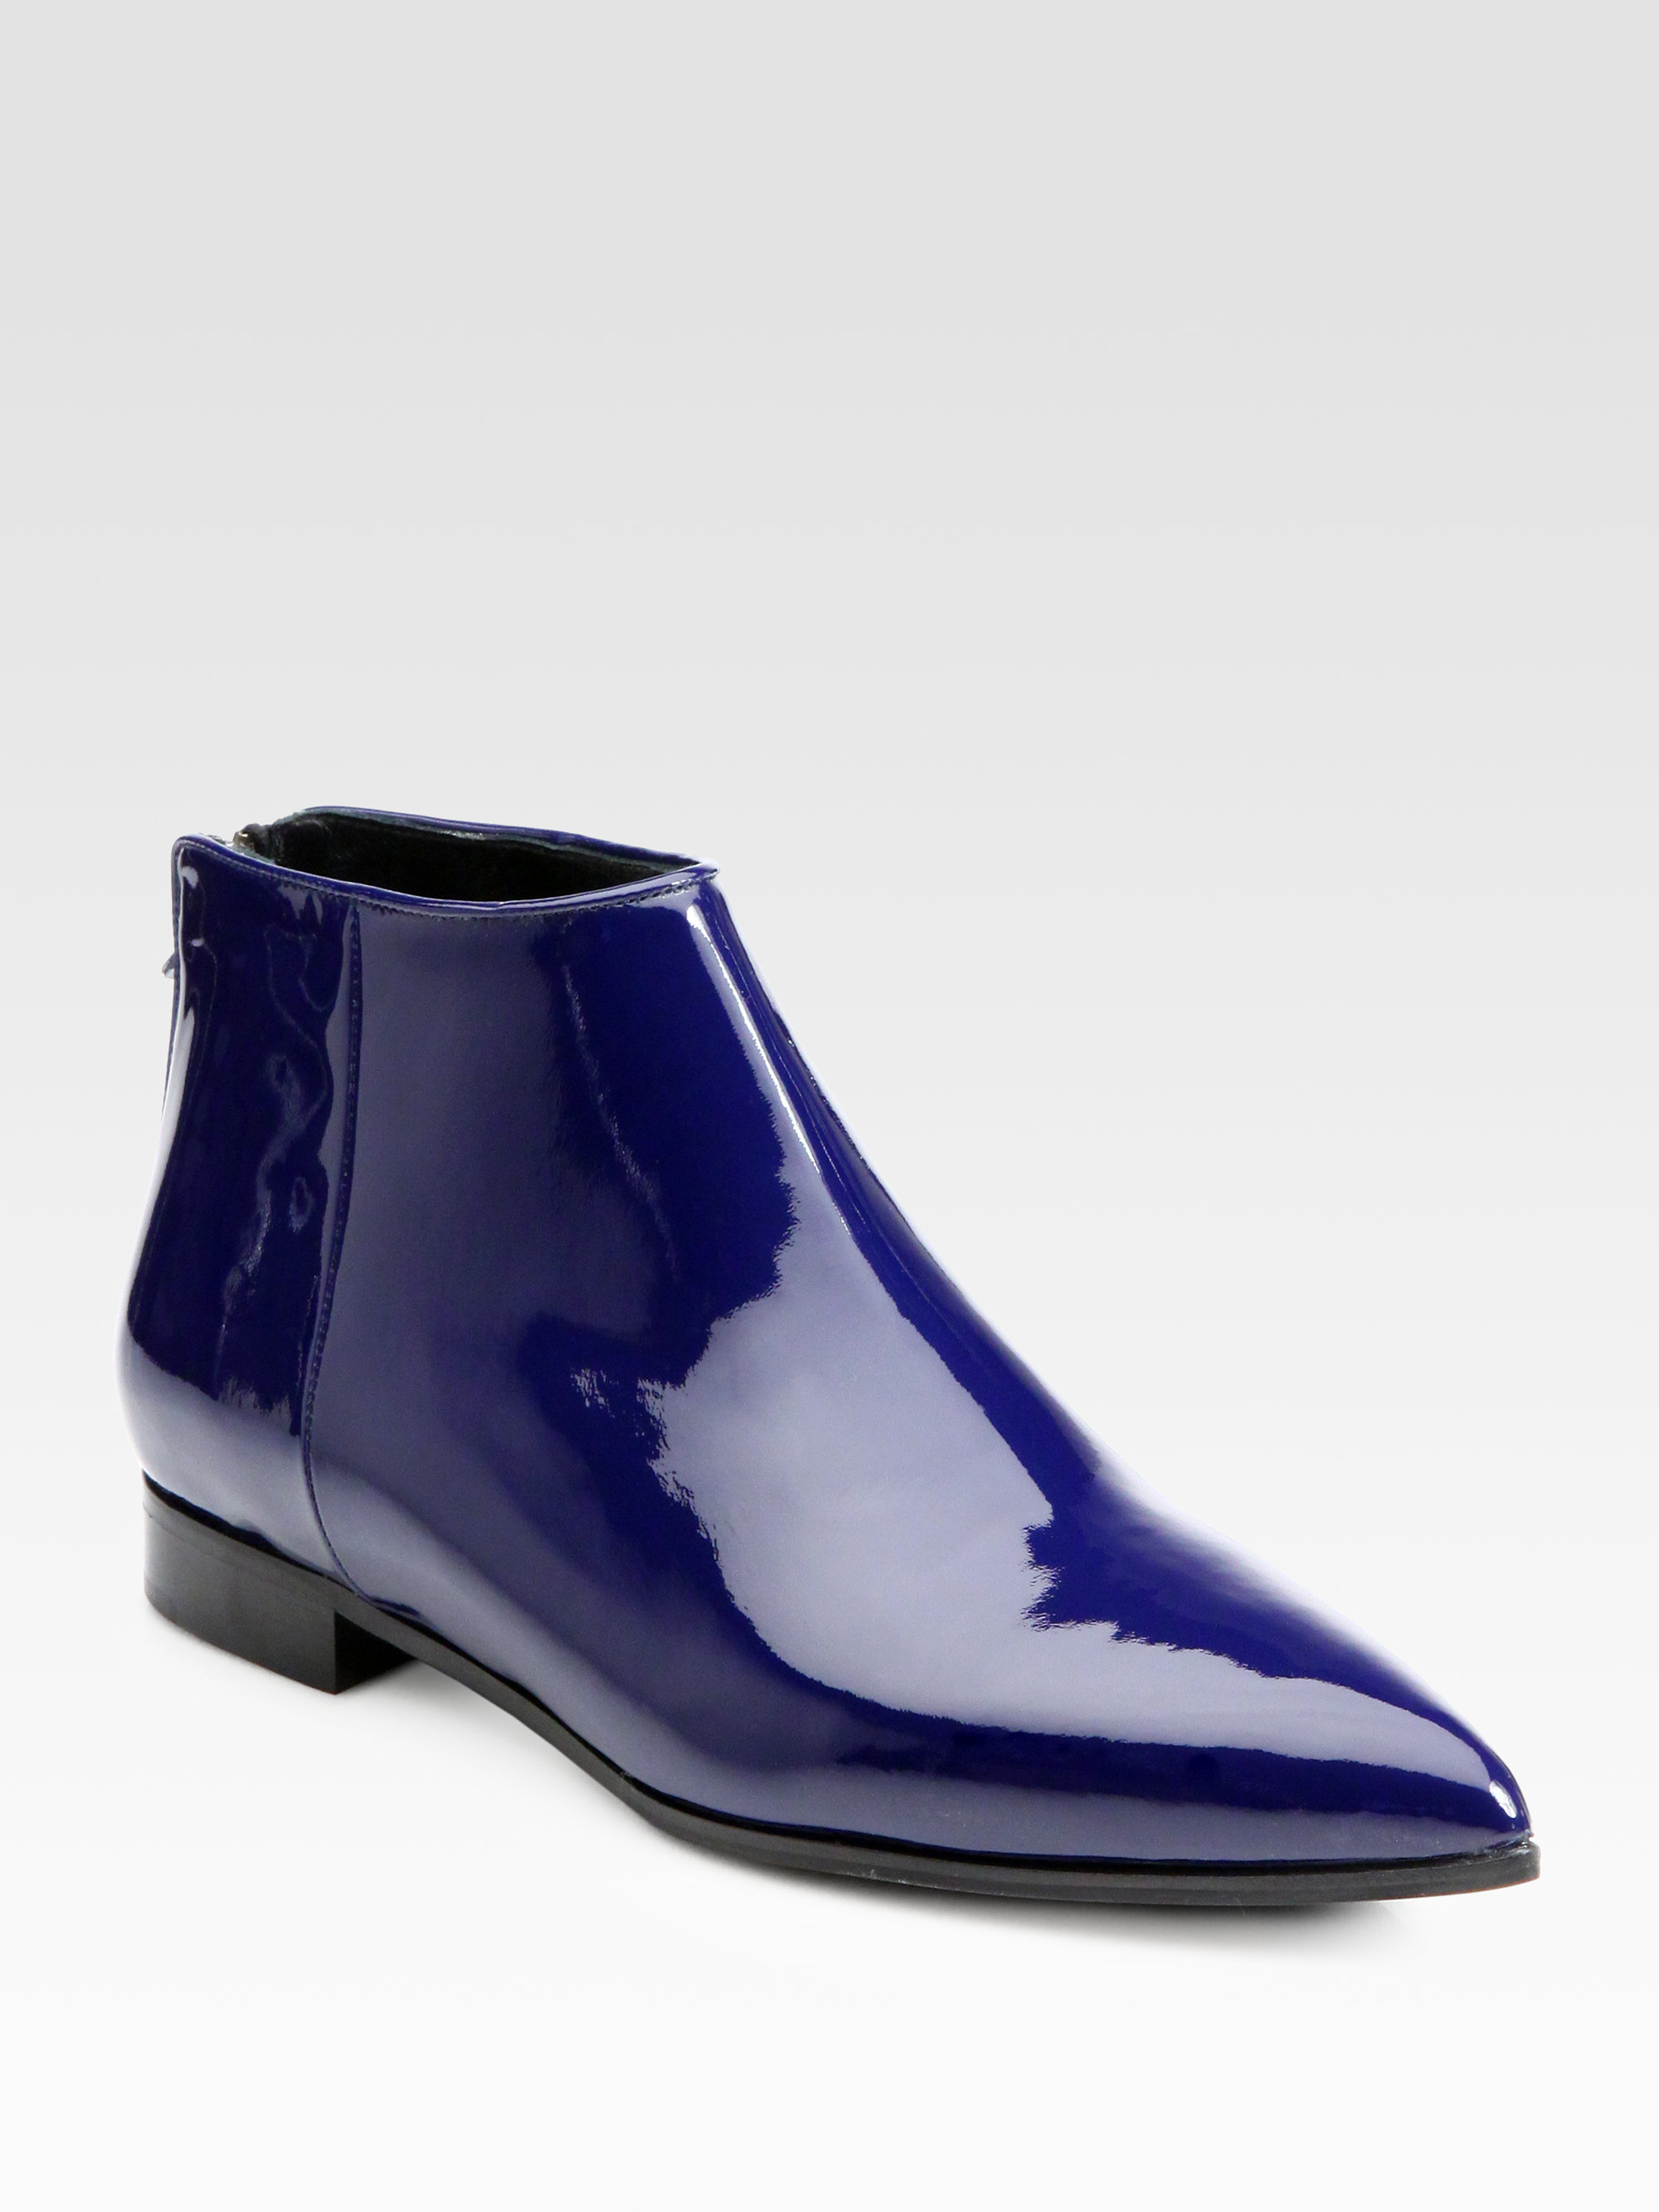 Miu Miu Patent Leather Ankle Boots In Blue Lyst